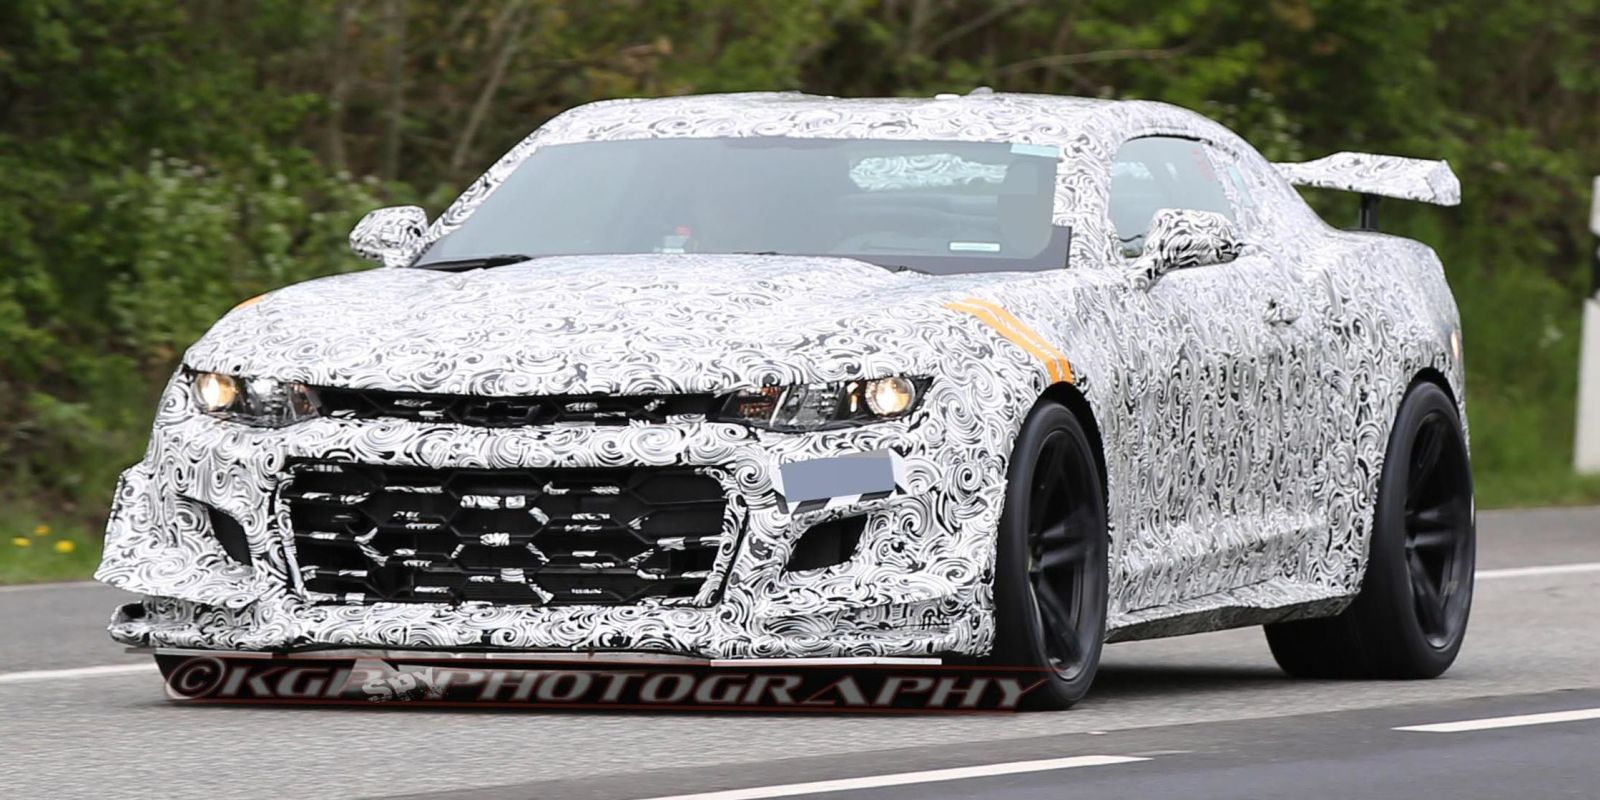 New Camaro Z28 Spied Testing At The Nurburgring